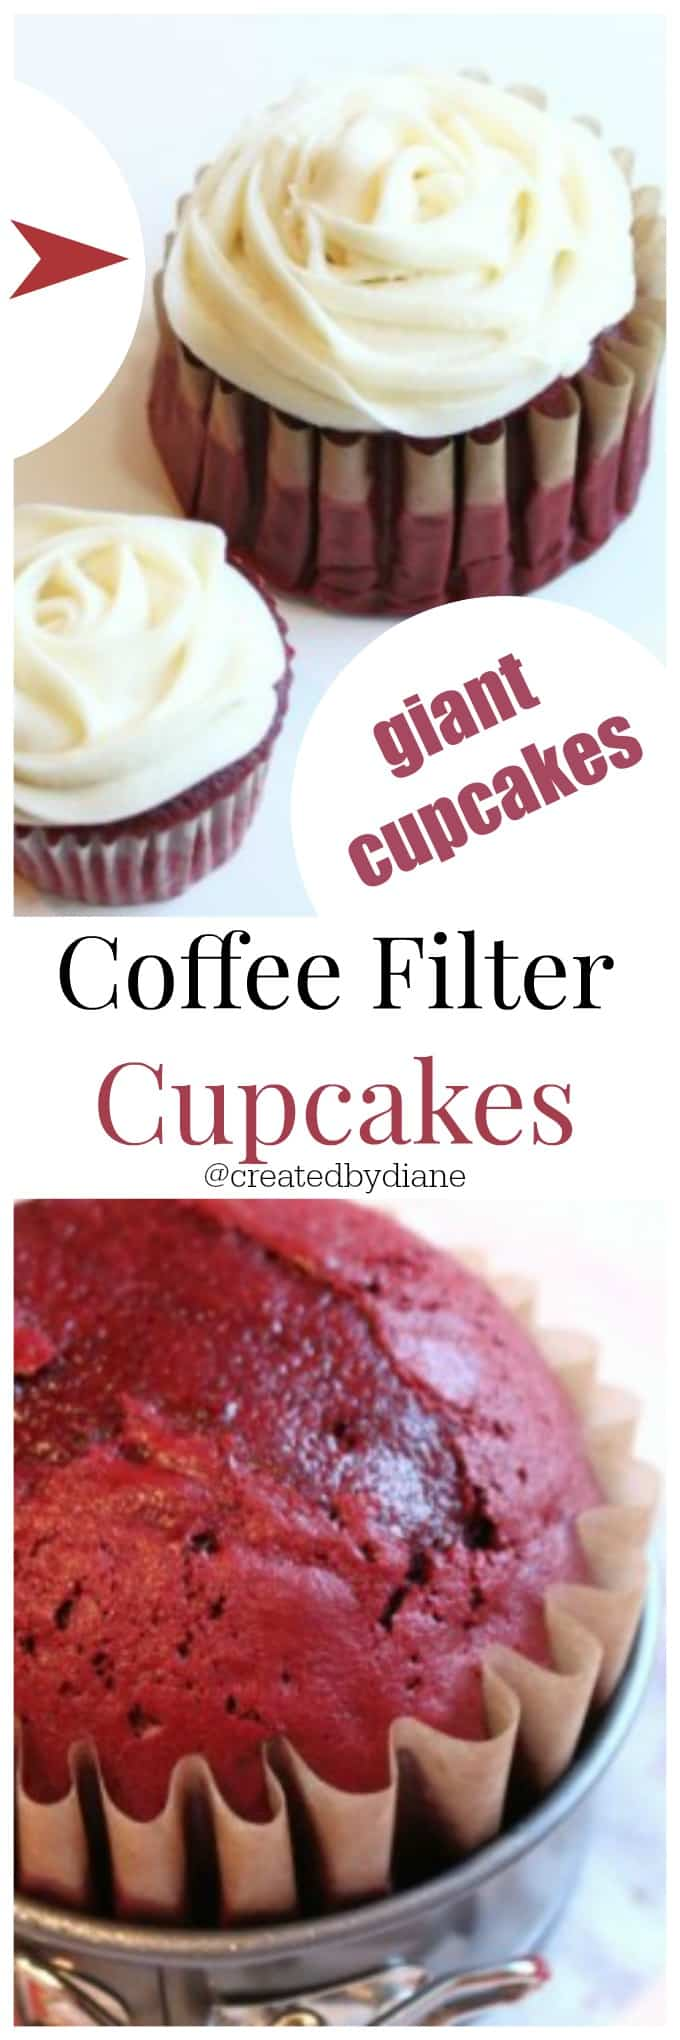 Coffee Filter Cupcakes are GIANT Cupcakes @createdbydiane